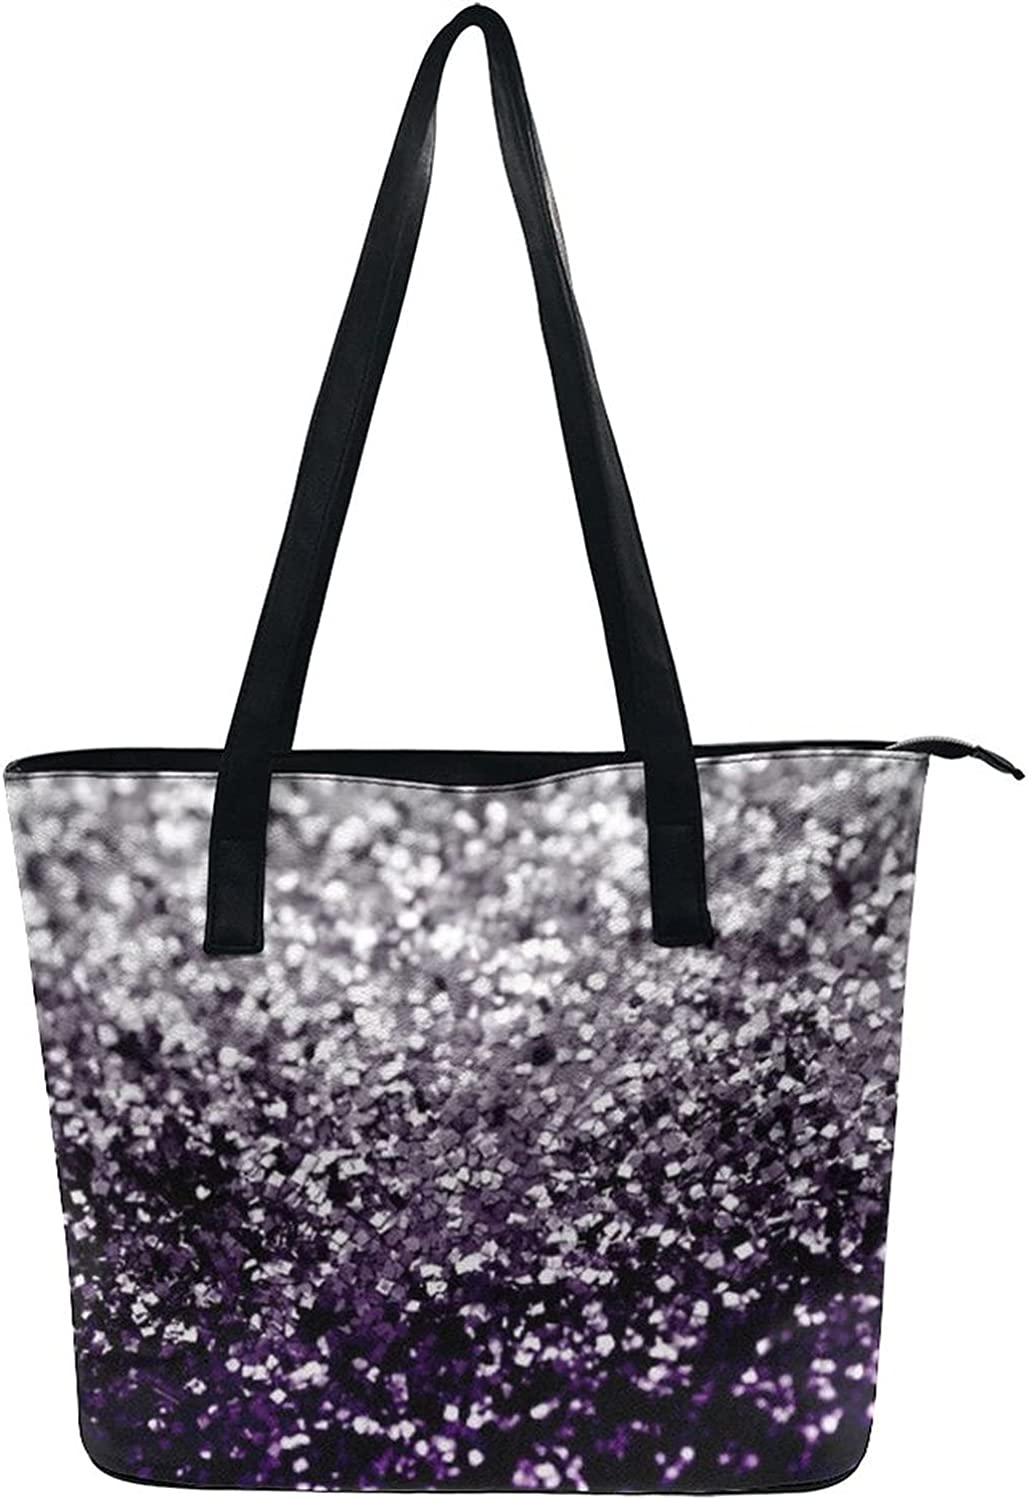 Beach Tote Bags Satchel Shoulder High quality new Bag Lady Women Classic Tour For unisex